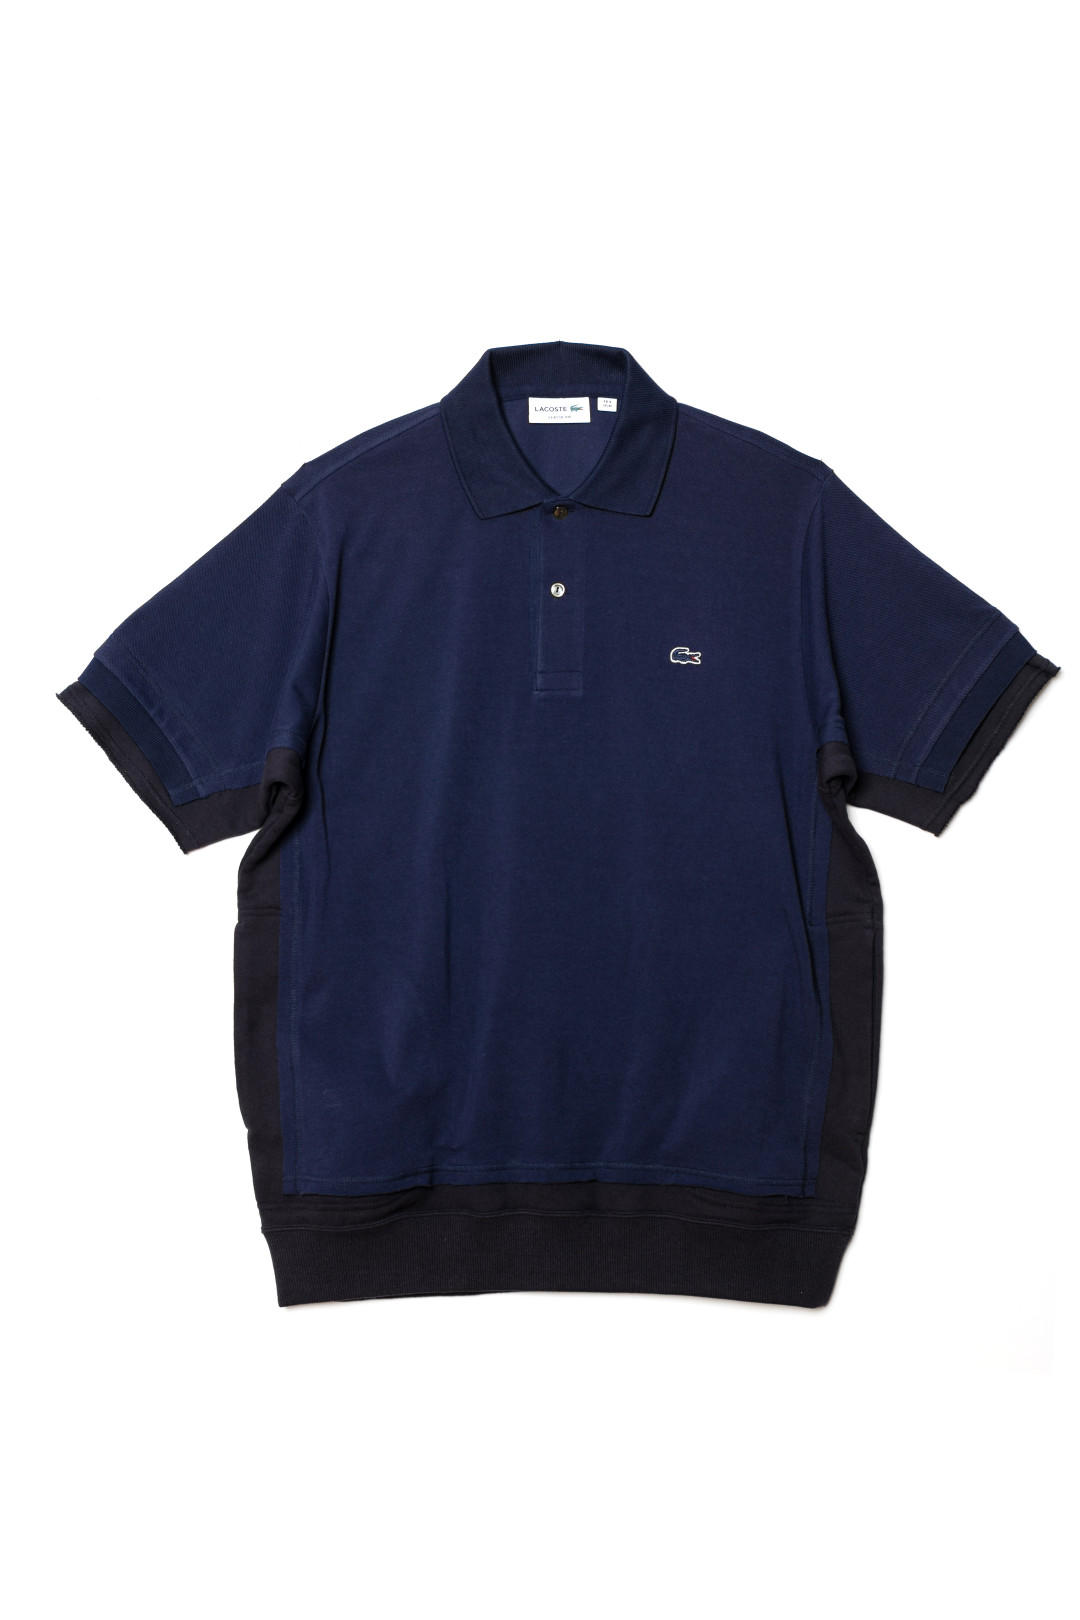 Short Sleeved polo ネイビー(3万9,000円)